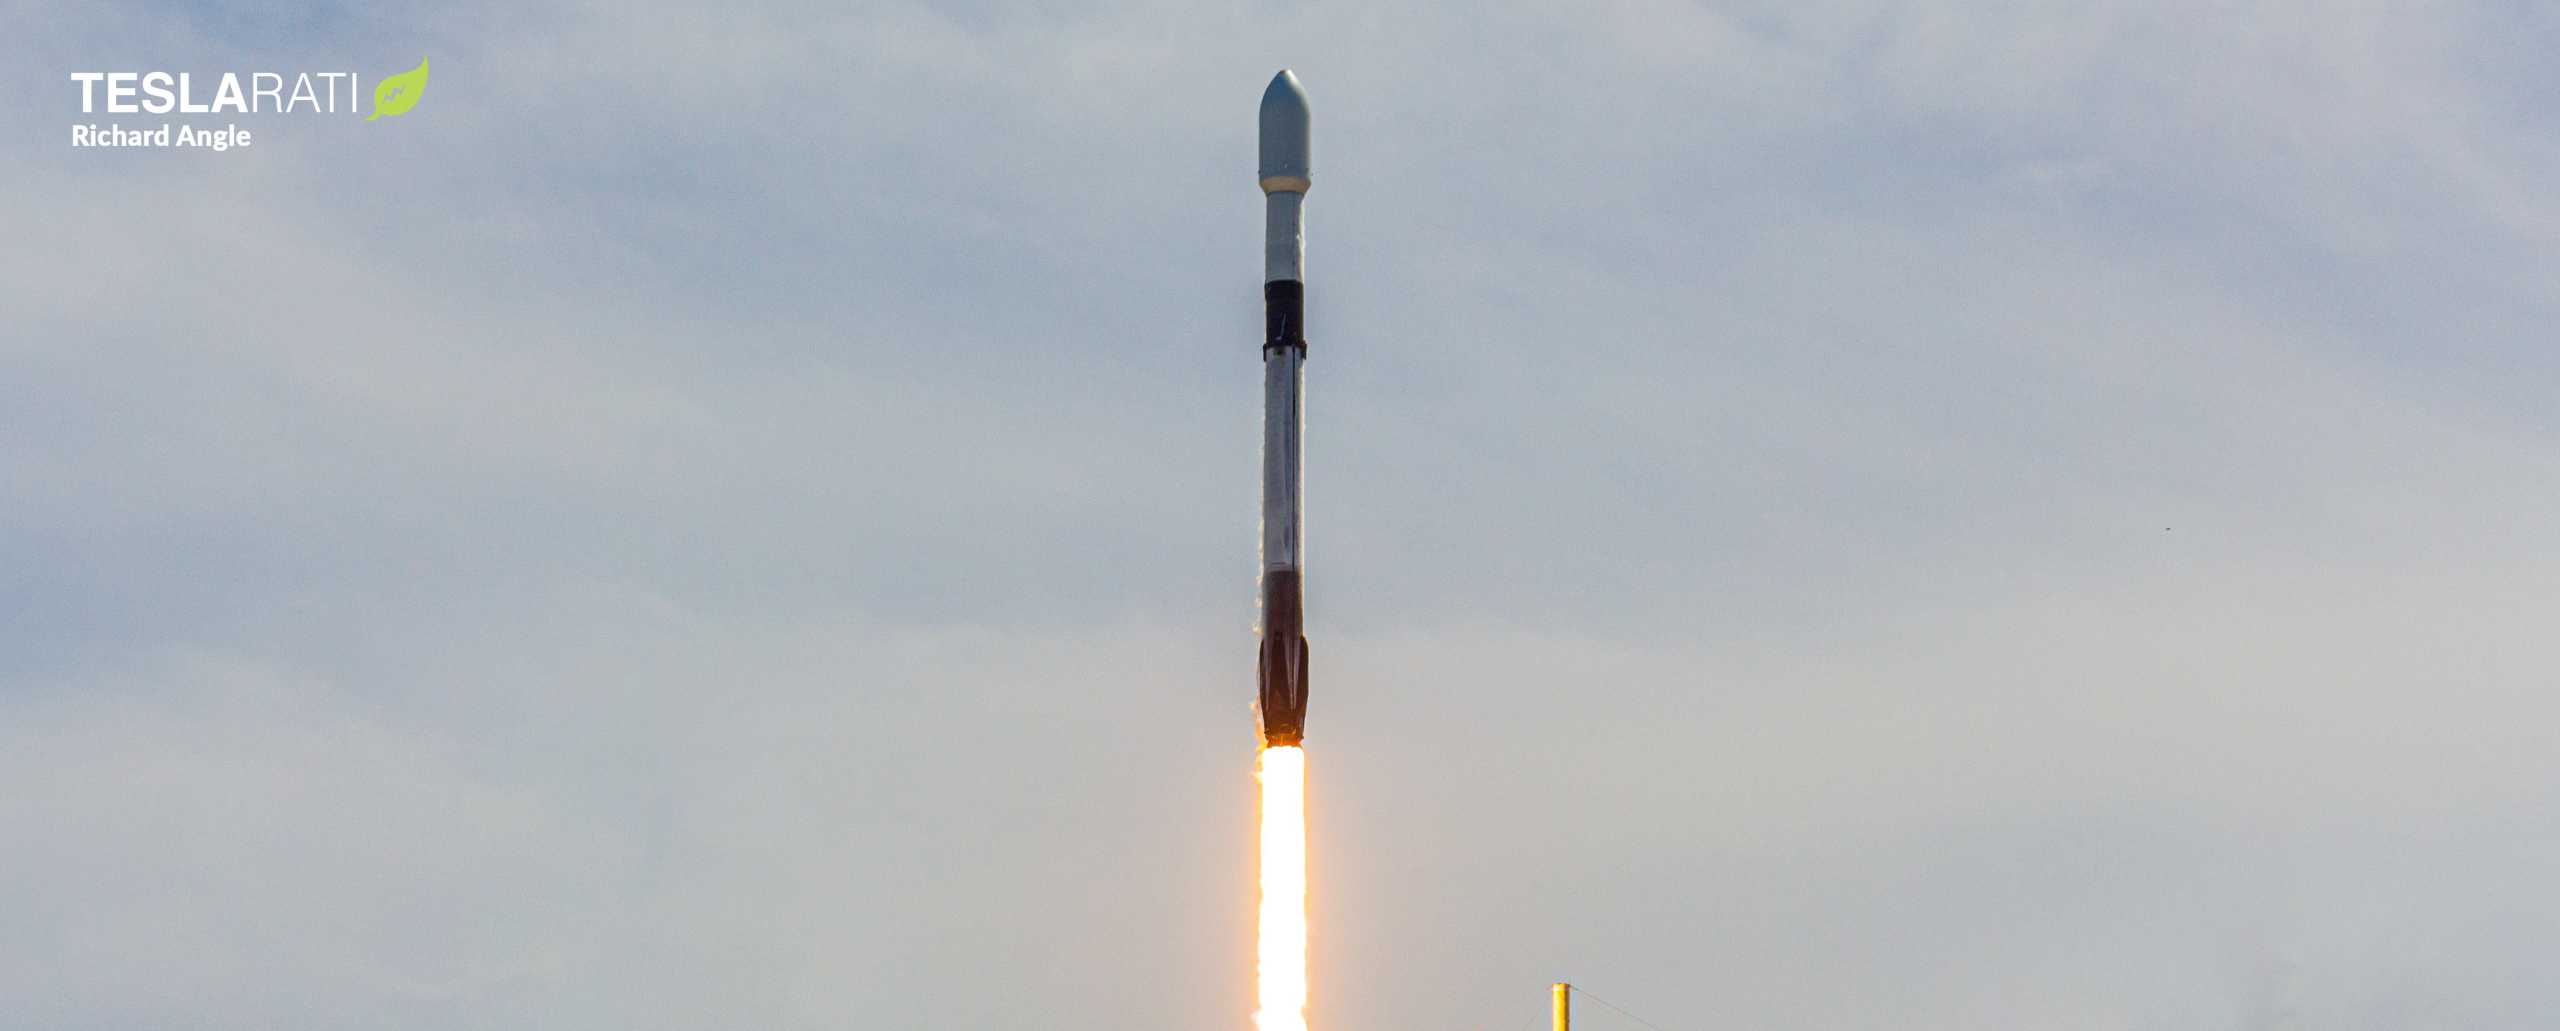 Falcon 9 Starlink 6 042220 (Richard Angle) launch 4 edit (c)